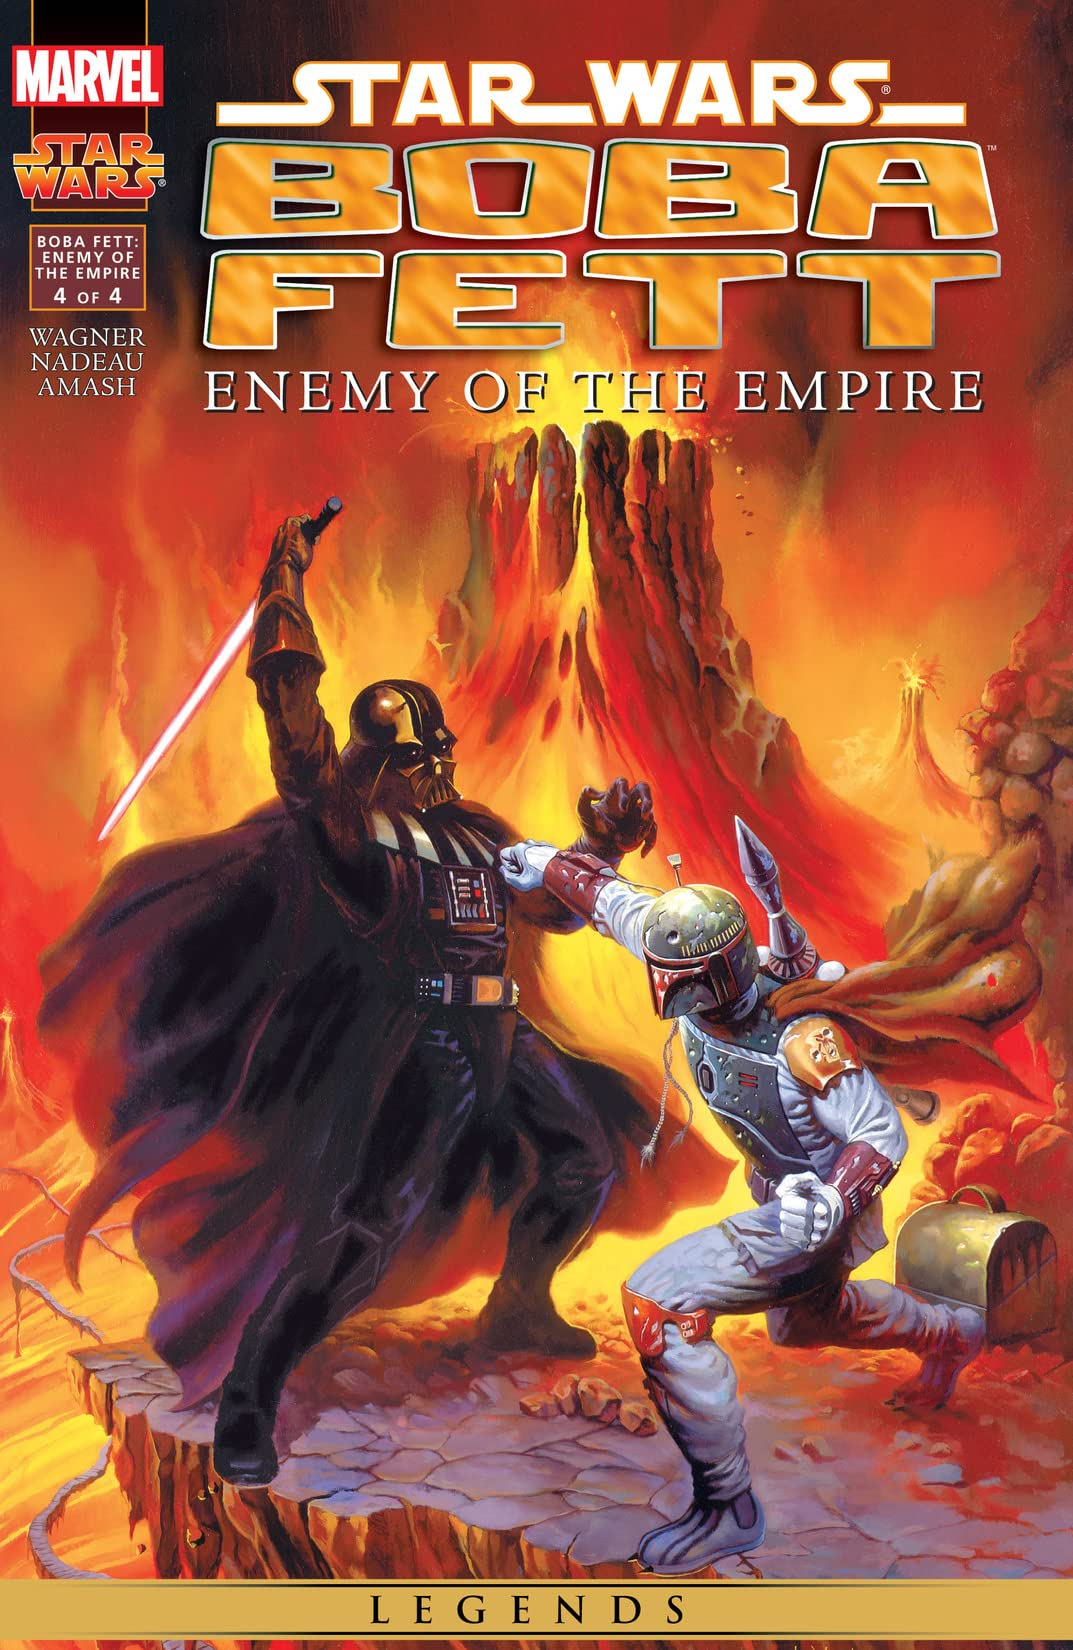 Star Wars: Boba Fett - Enemy of the Empire (1999) #4 (of 4)